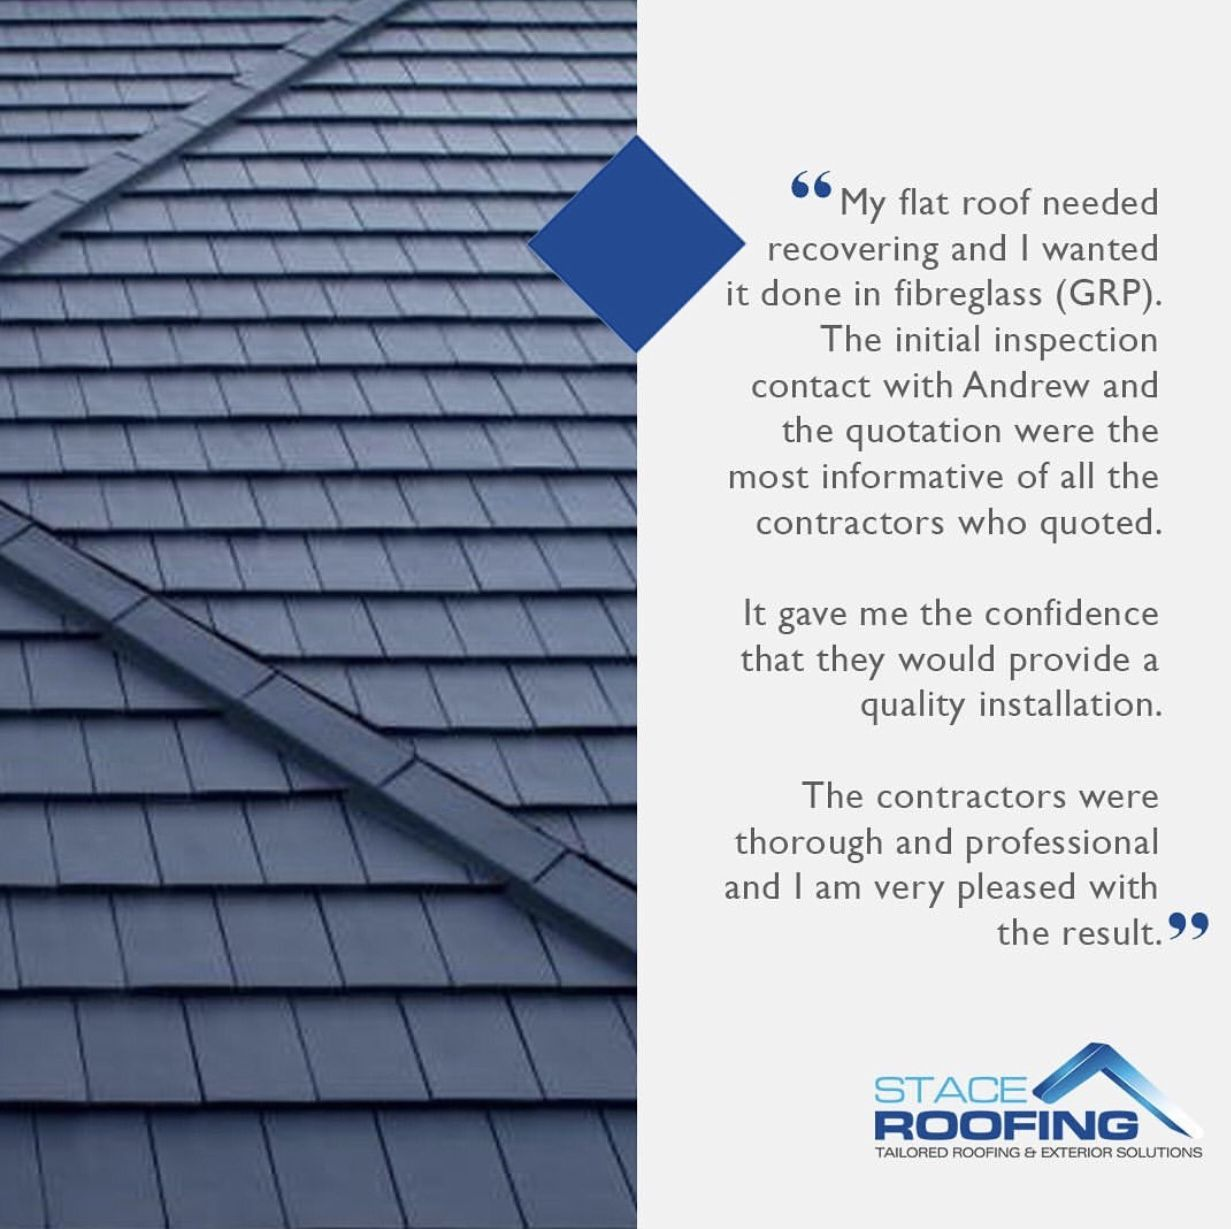 A great review from a customer that wanted their flat roof